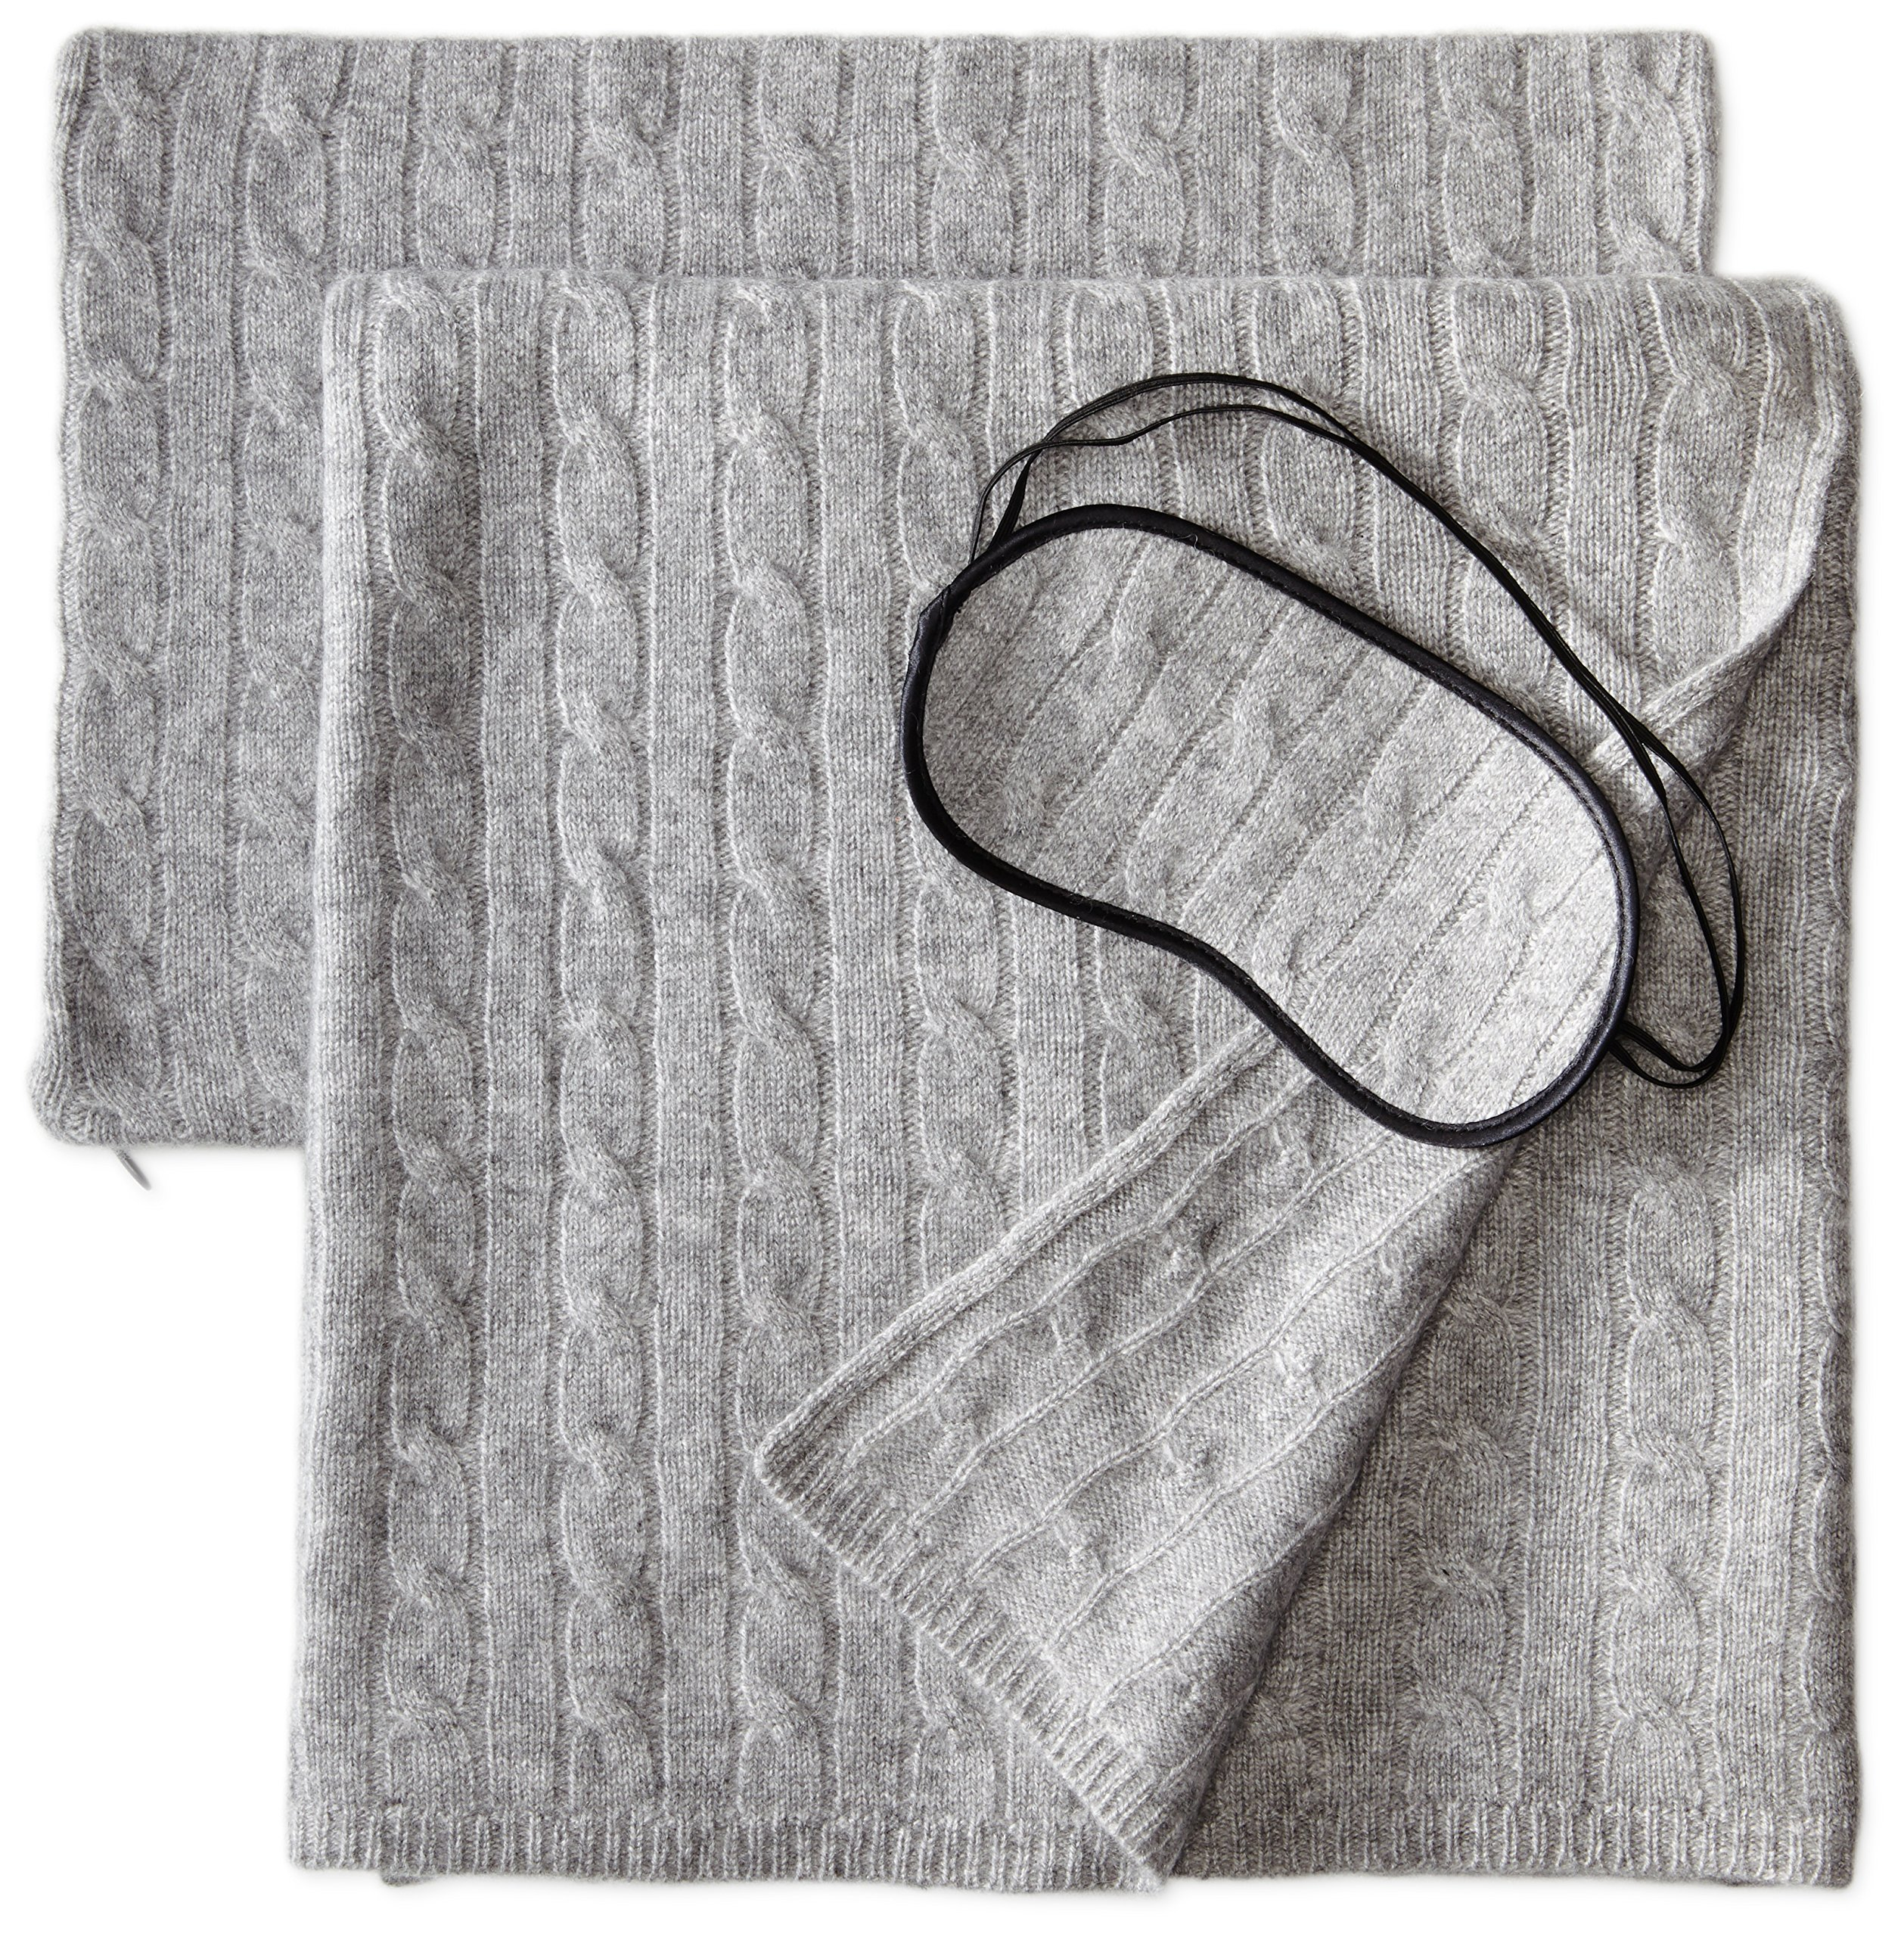 Sofia Cashmere 100% Cashmere Cable Travel Set with Blanket, Pillow Case, and Eye Mask, Grey, One Size